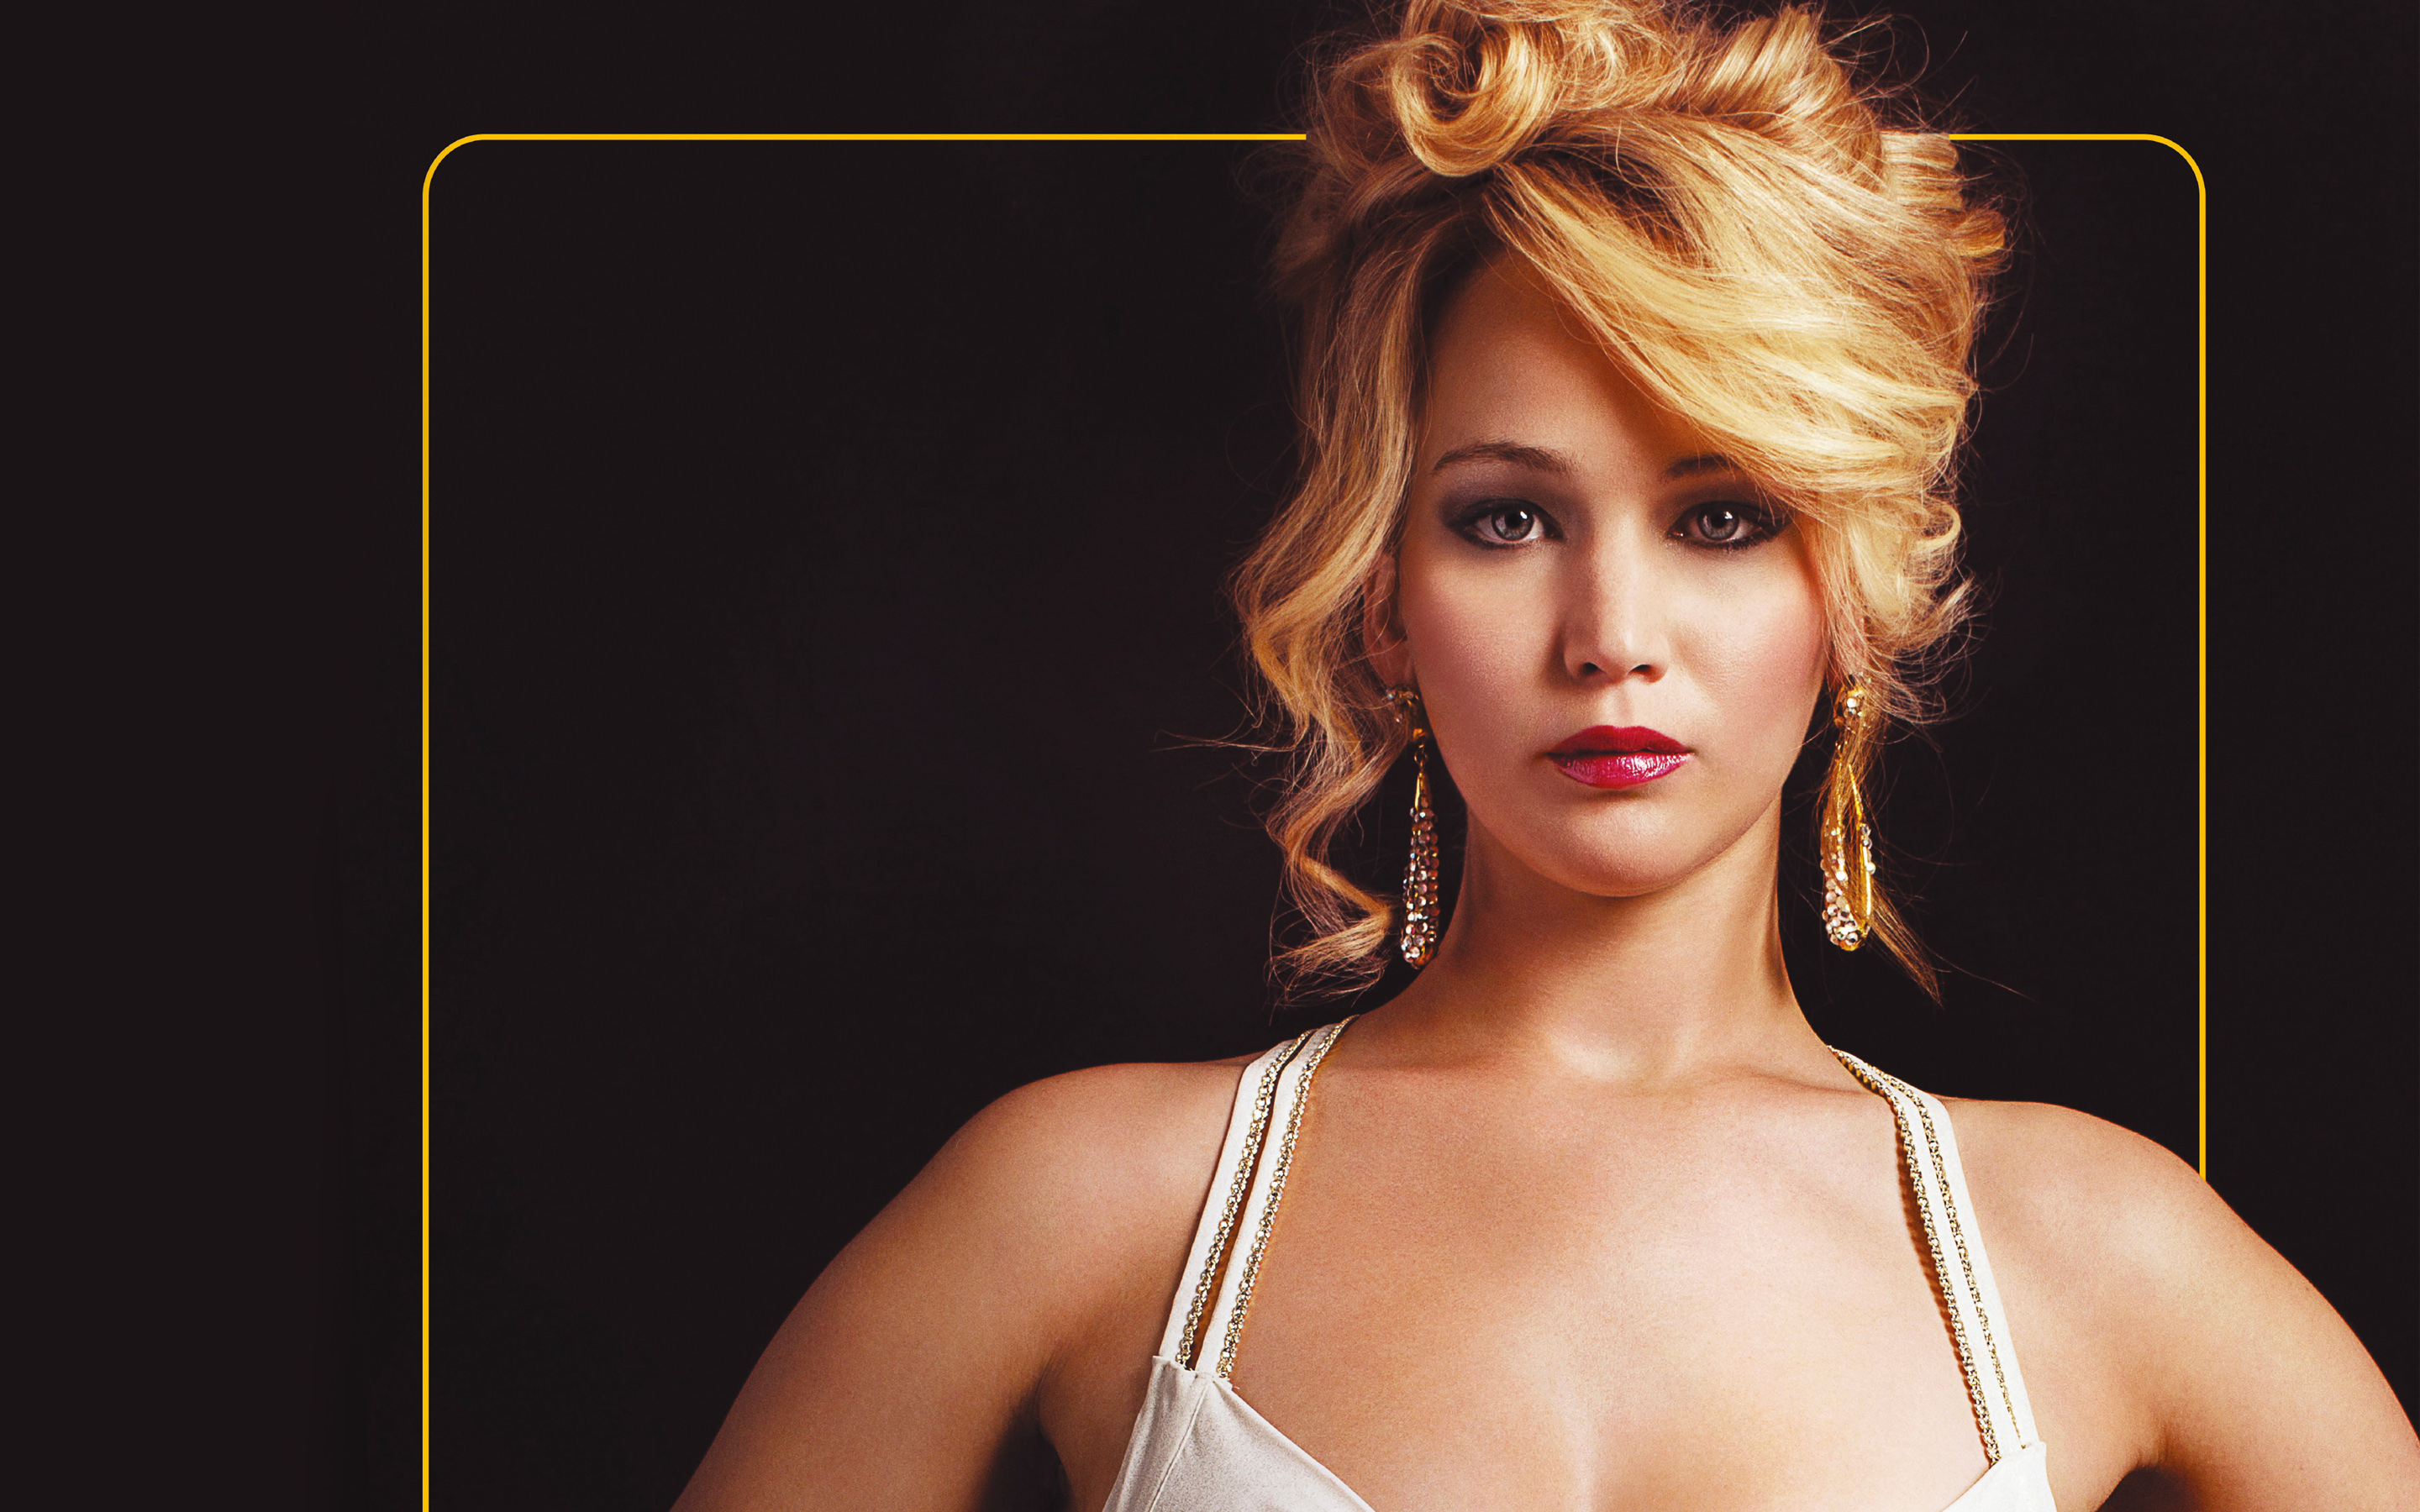 Jennifer Lawrence pictures & images